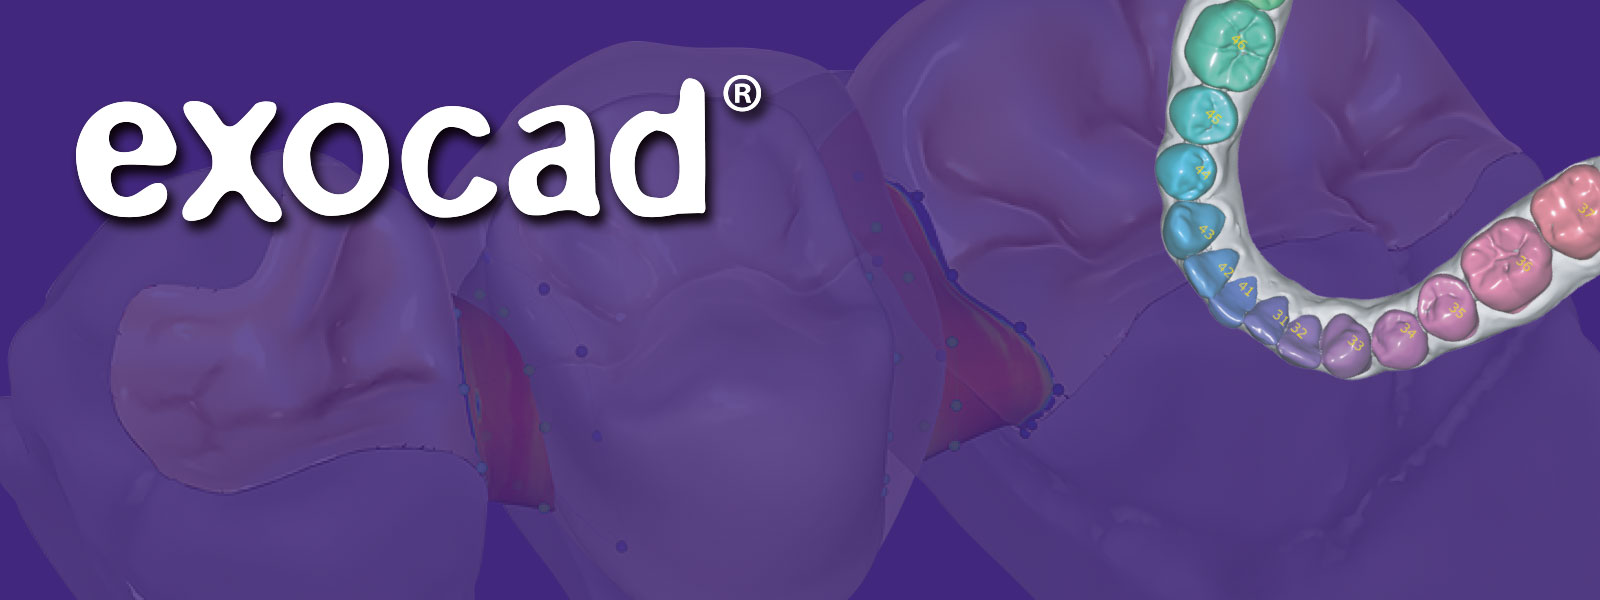 exocad software